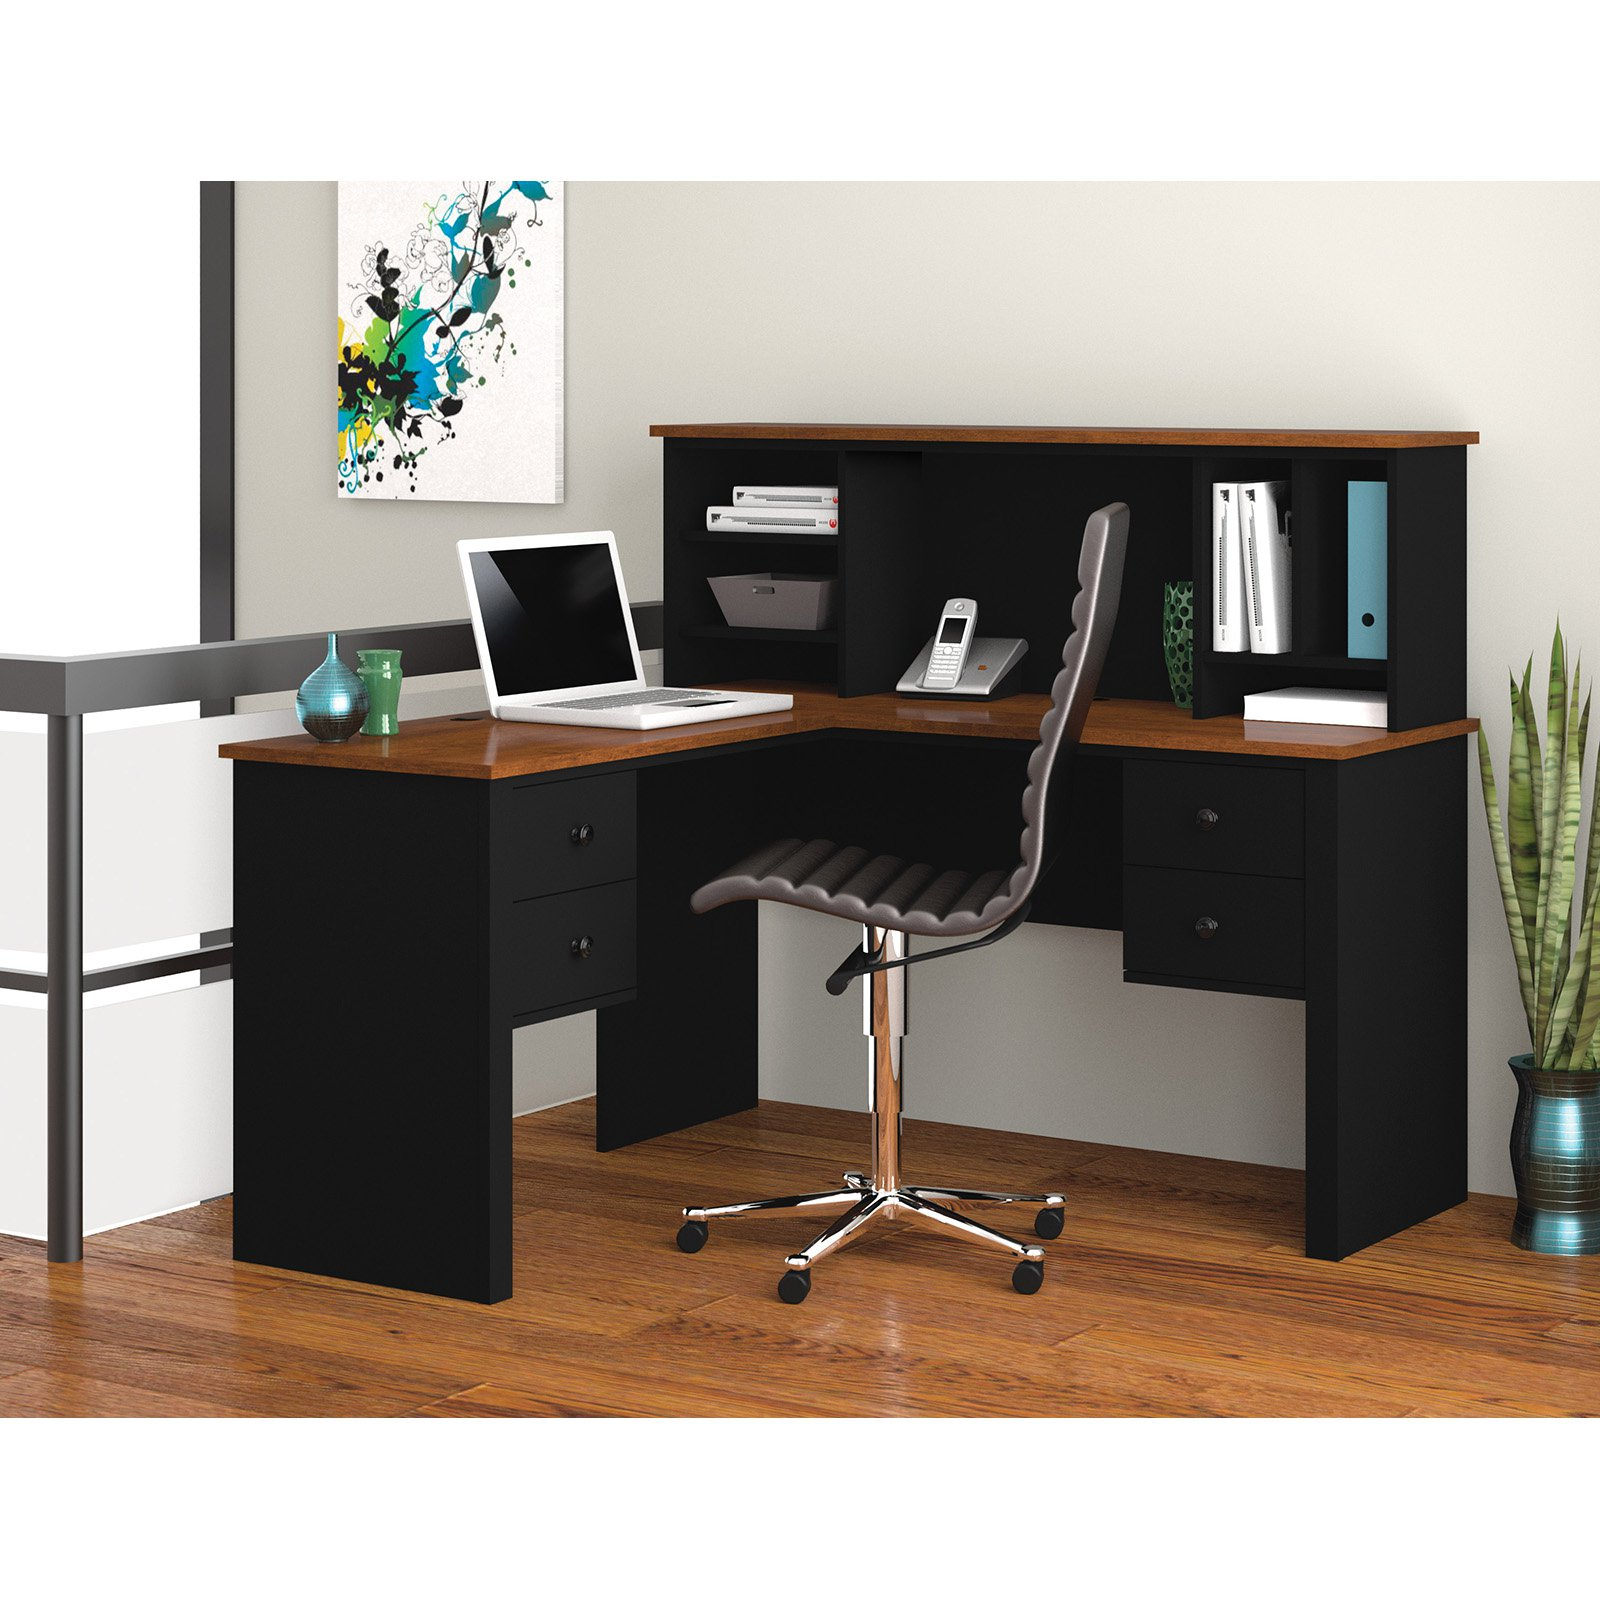 Bestar 45850-18 Somerville L-Shaped Desk with Hutch Black   Tuscany Brown by Bestar